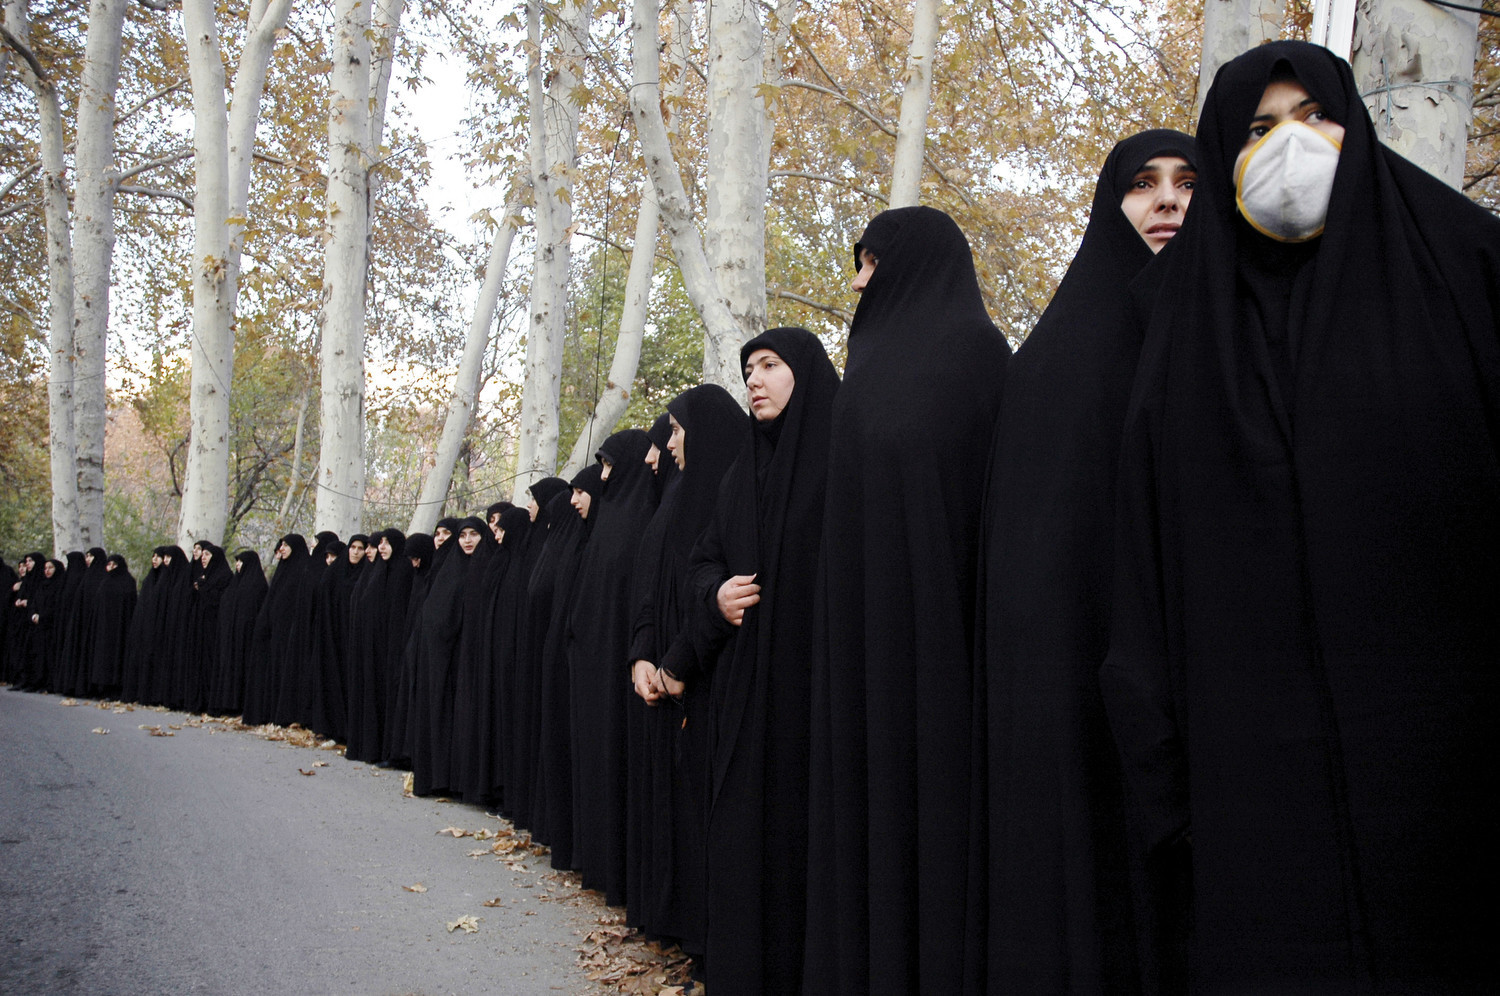 Tehran - Saadabad Palace - Every year many corpses of the war dead from the eight year Iran -Iraq War are found.  Basiji militia-women participate in funeral ceremonies for the Iran Iraq War dead.